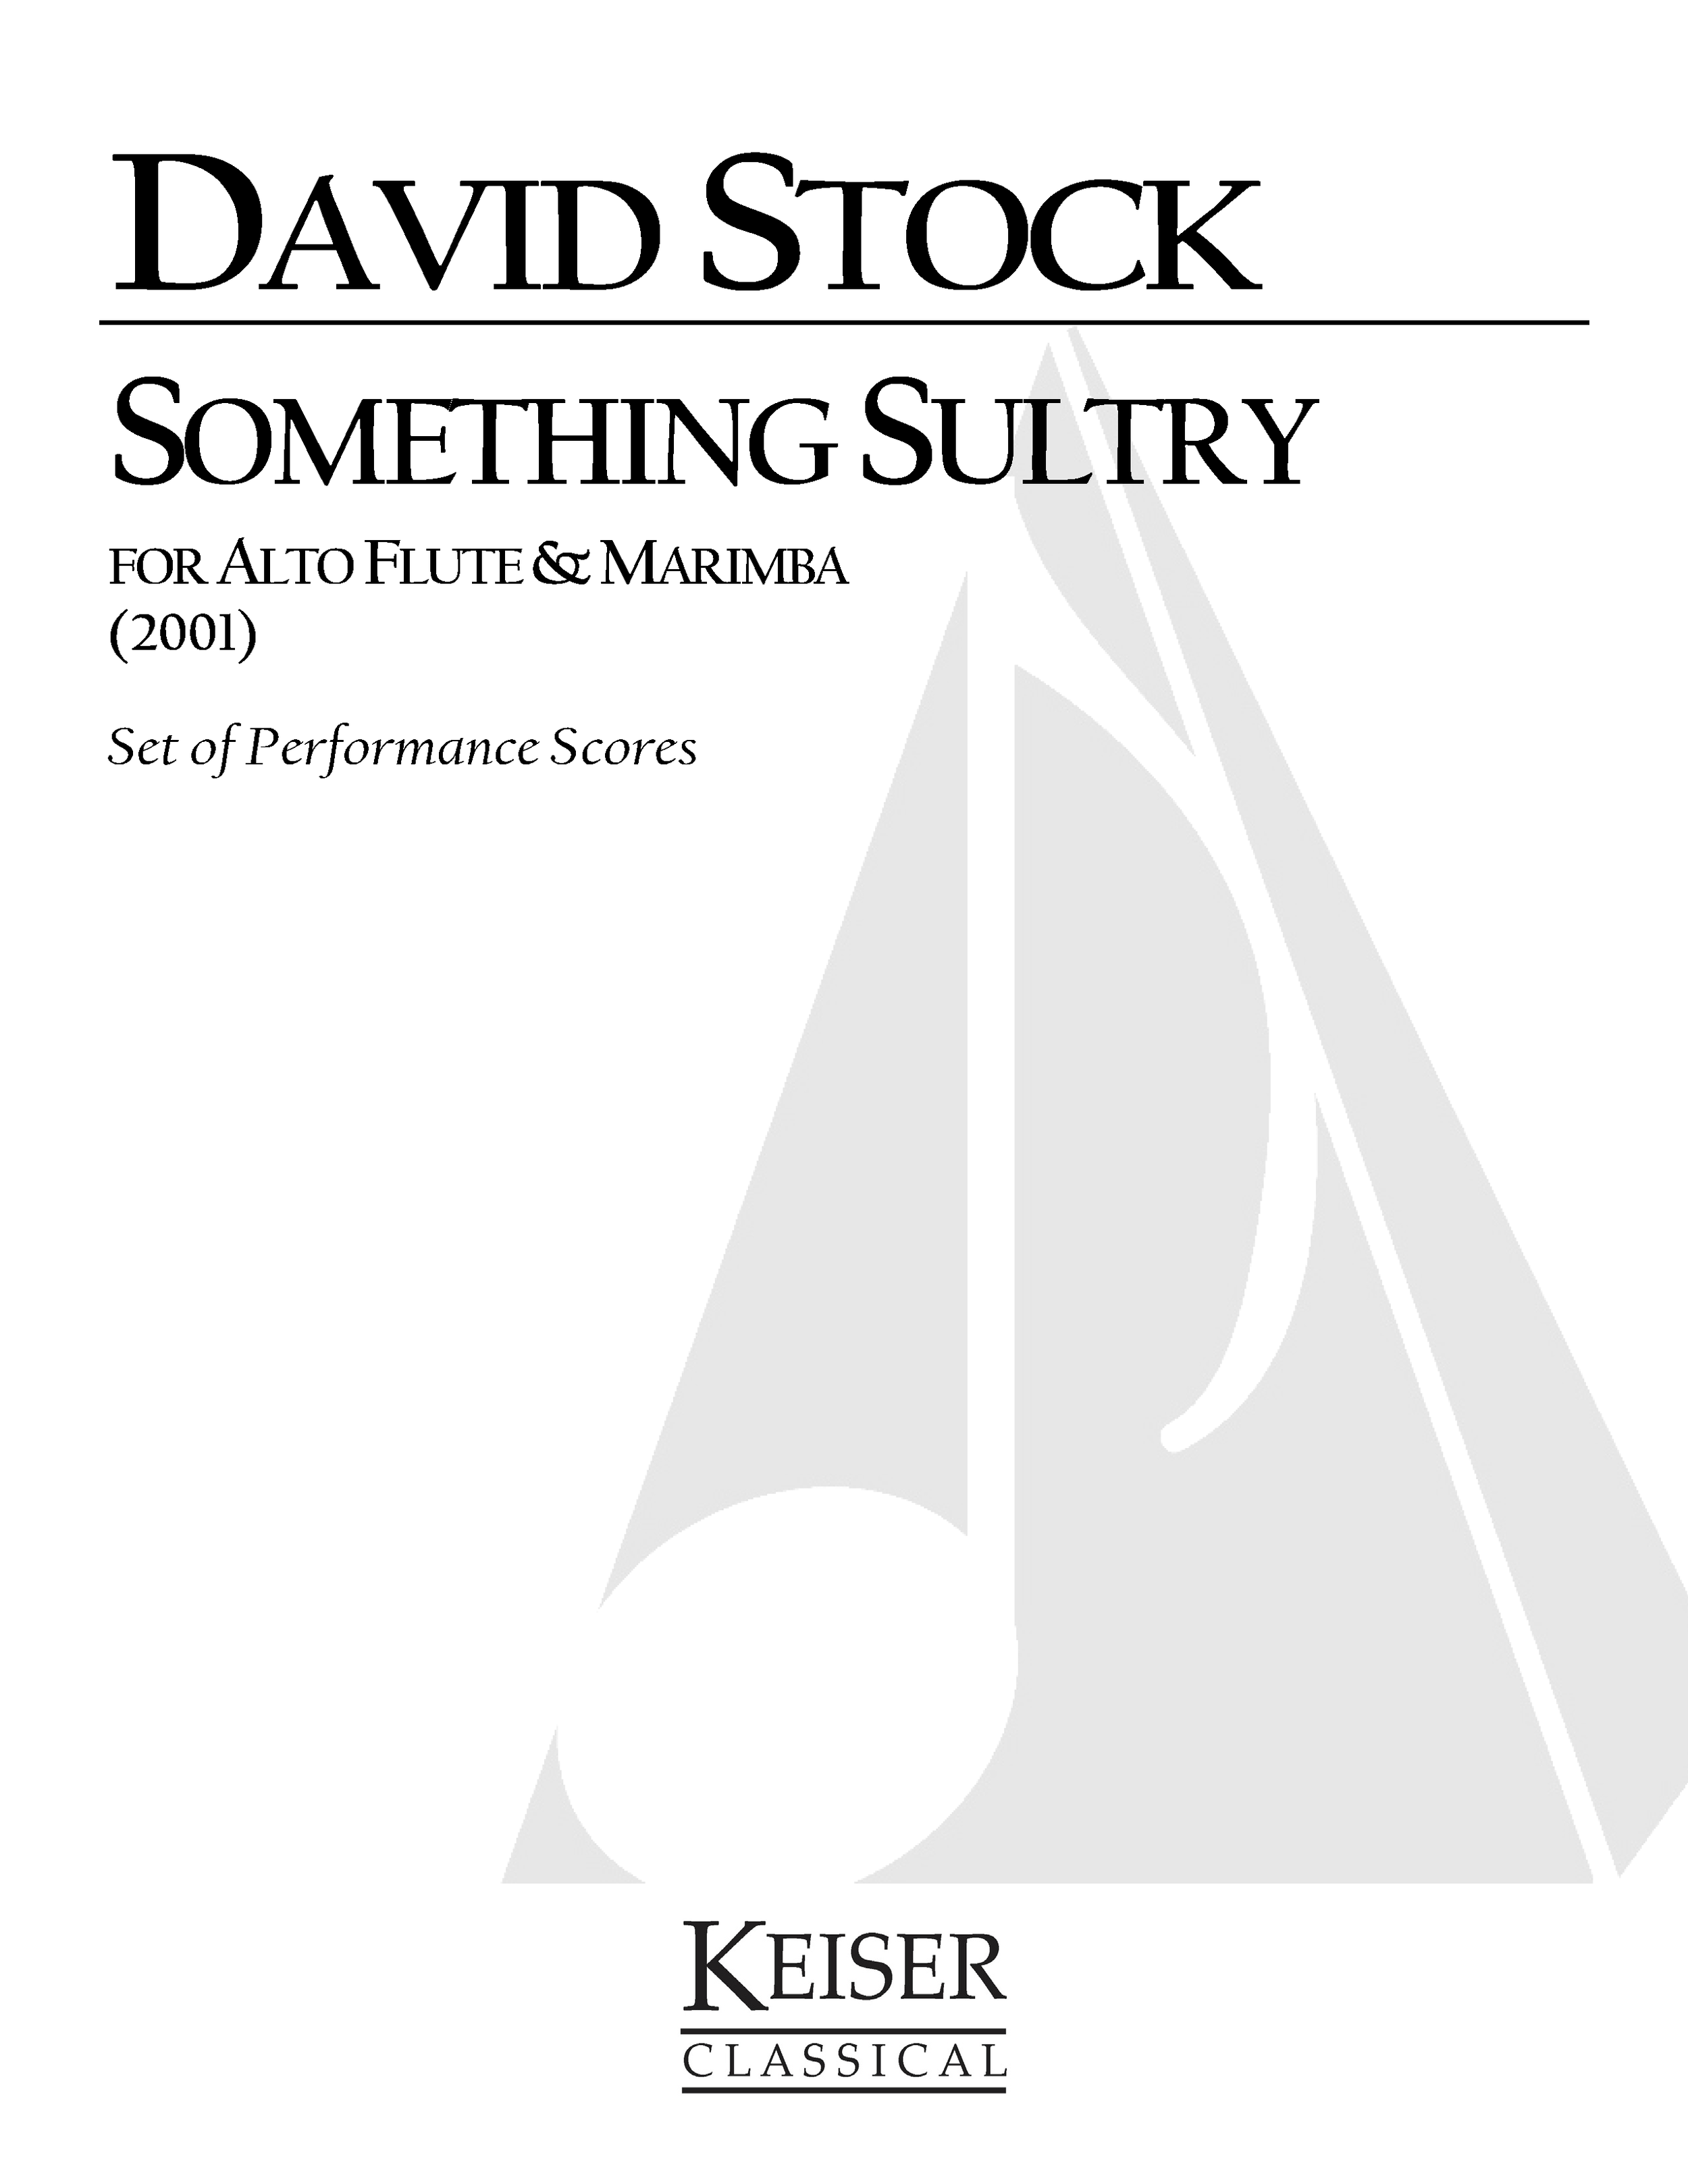 Something Sultry  (2001) - Alto Flute, MarimbaRent/Buy: Keiser Music